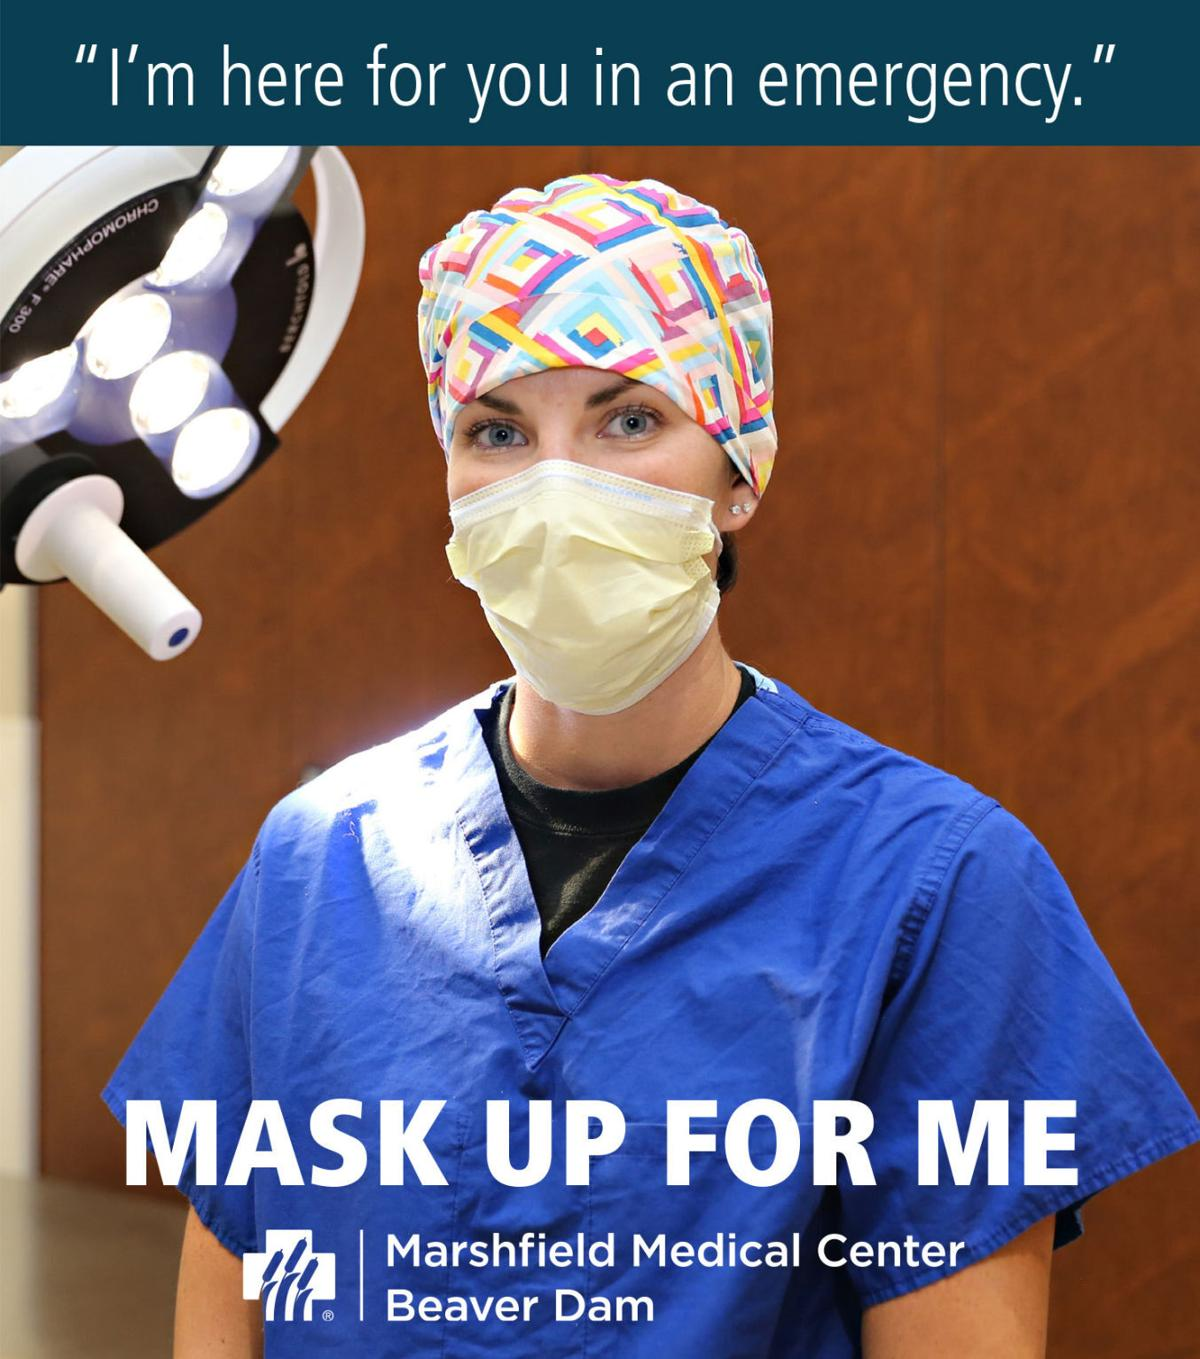 Mask up campaign launched